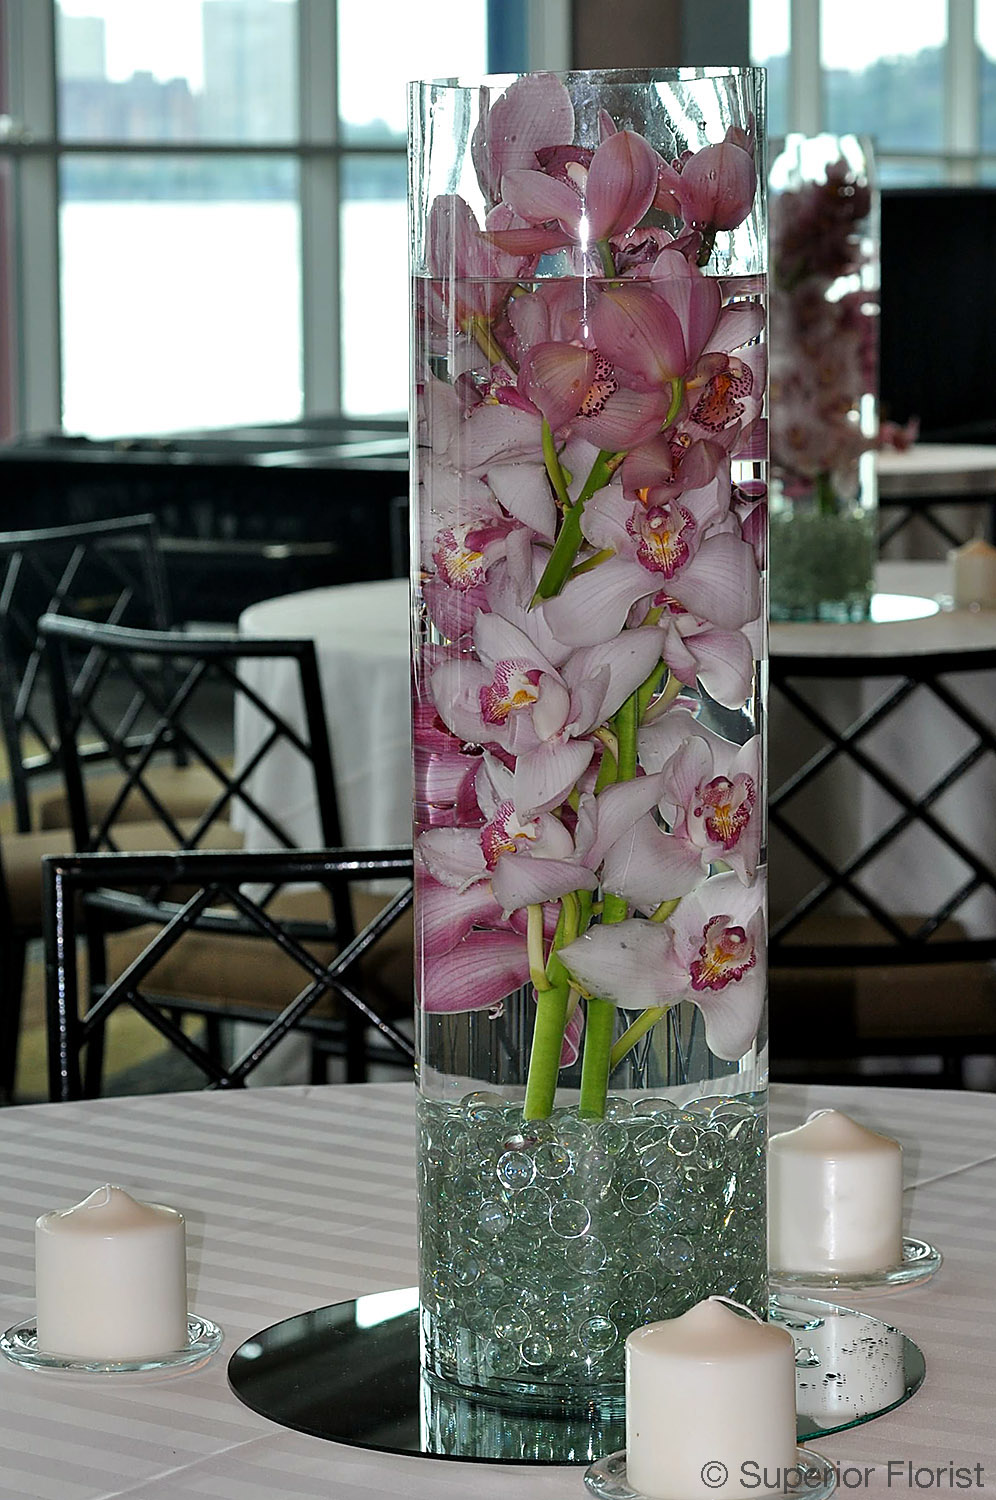 Superior Florist – Centerpieces: Submerged Cymbidiums in a glass cylinder vase with glass gems at bottom. Vase placed on mirror surrounded by three candles.